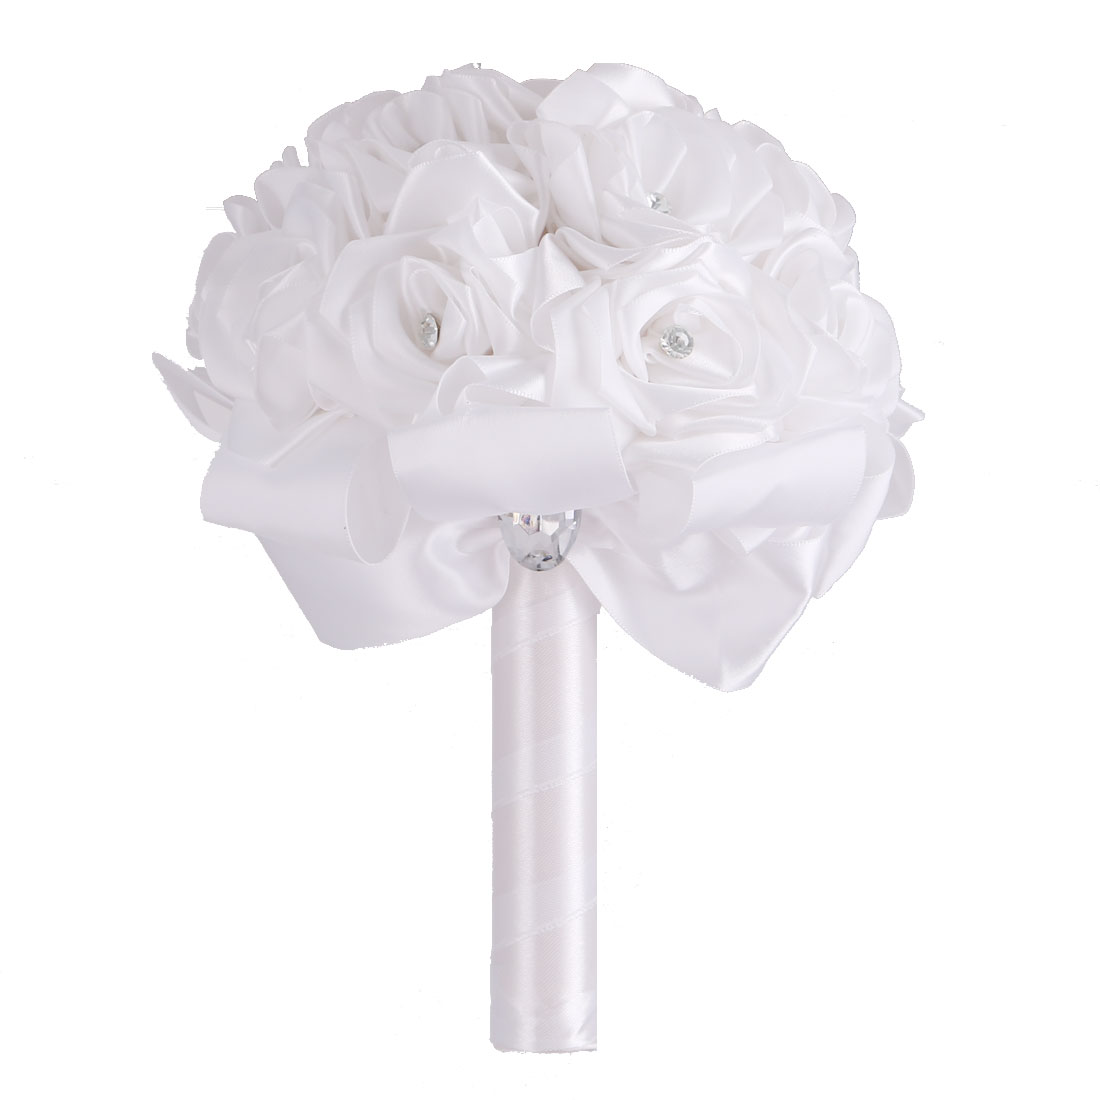 Wedding Party Foam Buds Handhold Roses Bouquet Craft Artificial Flower Decor White